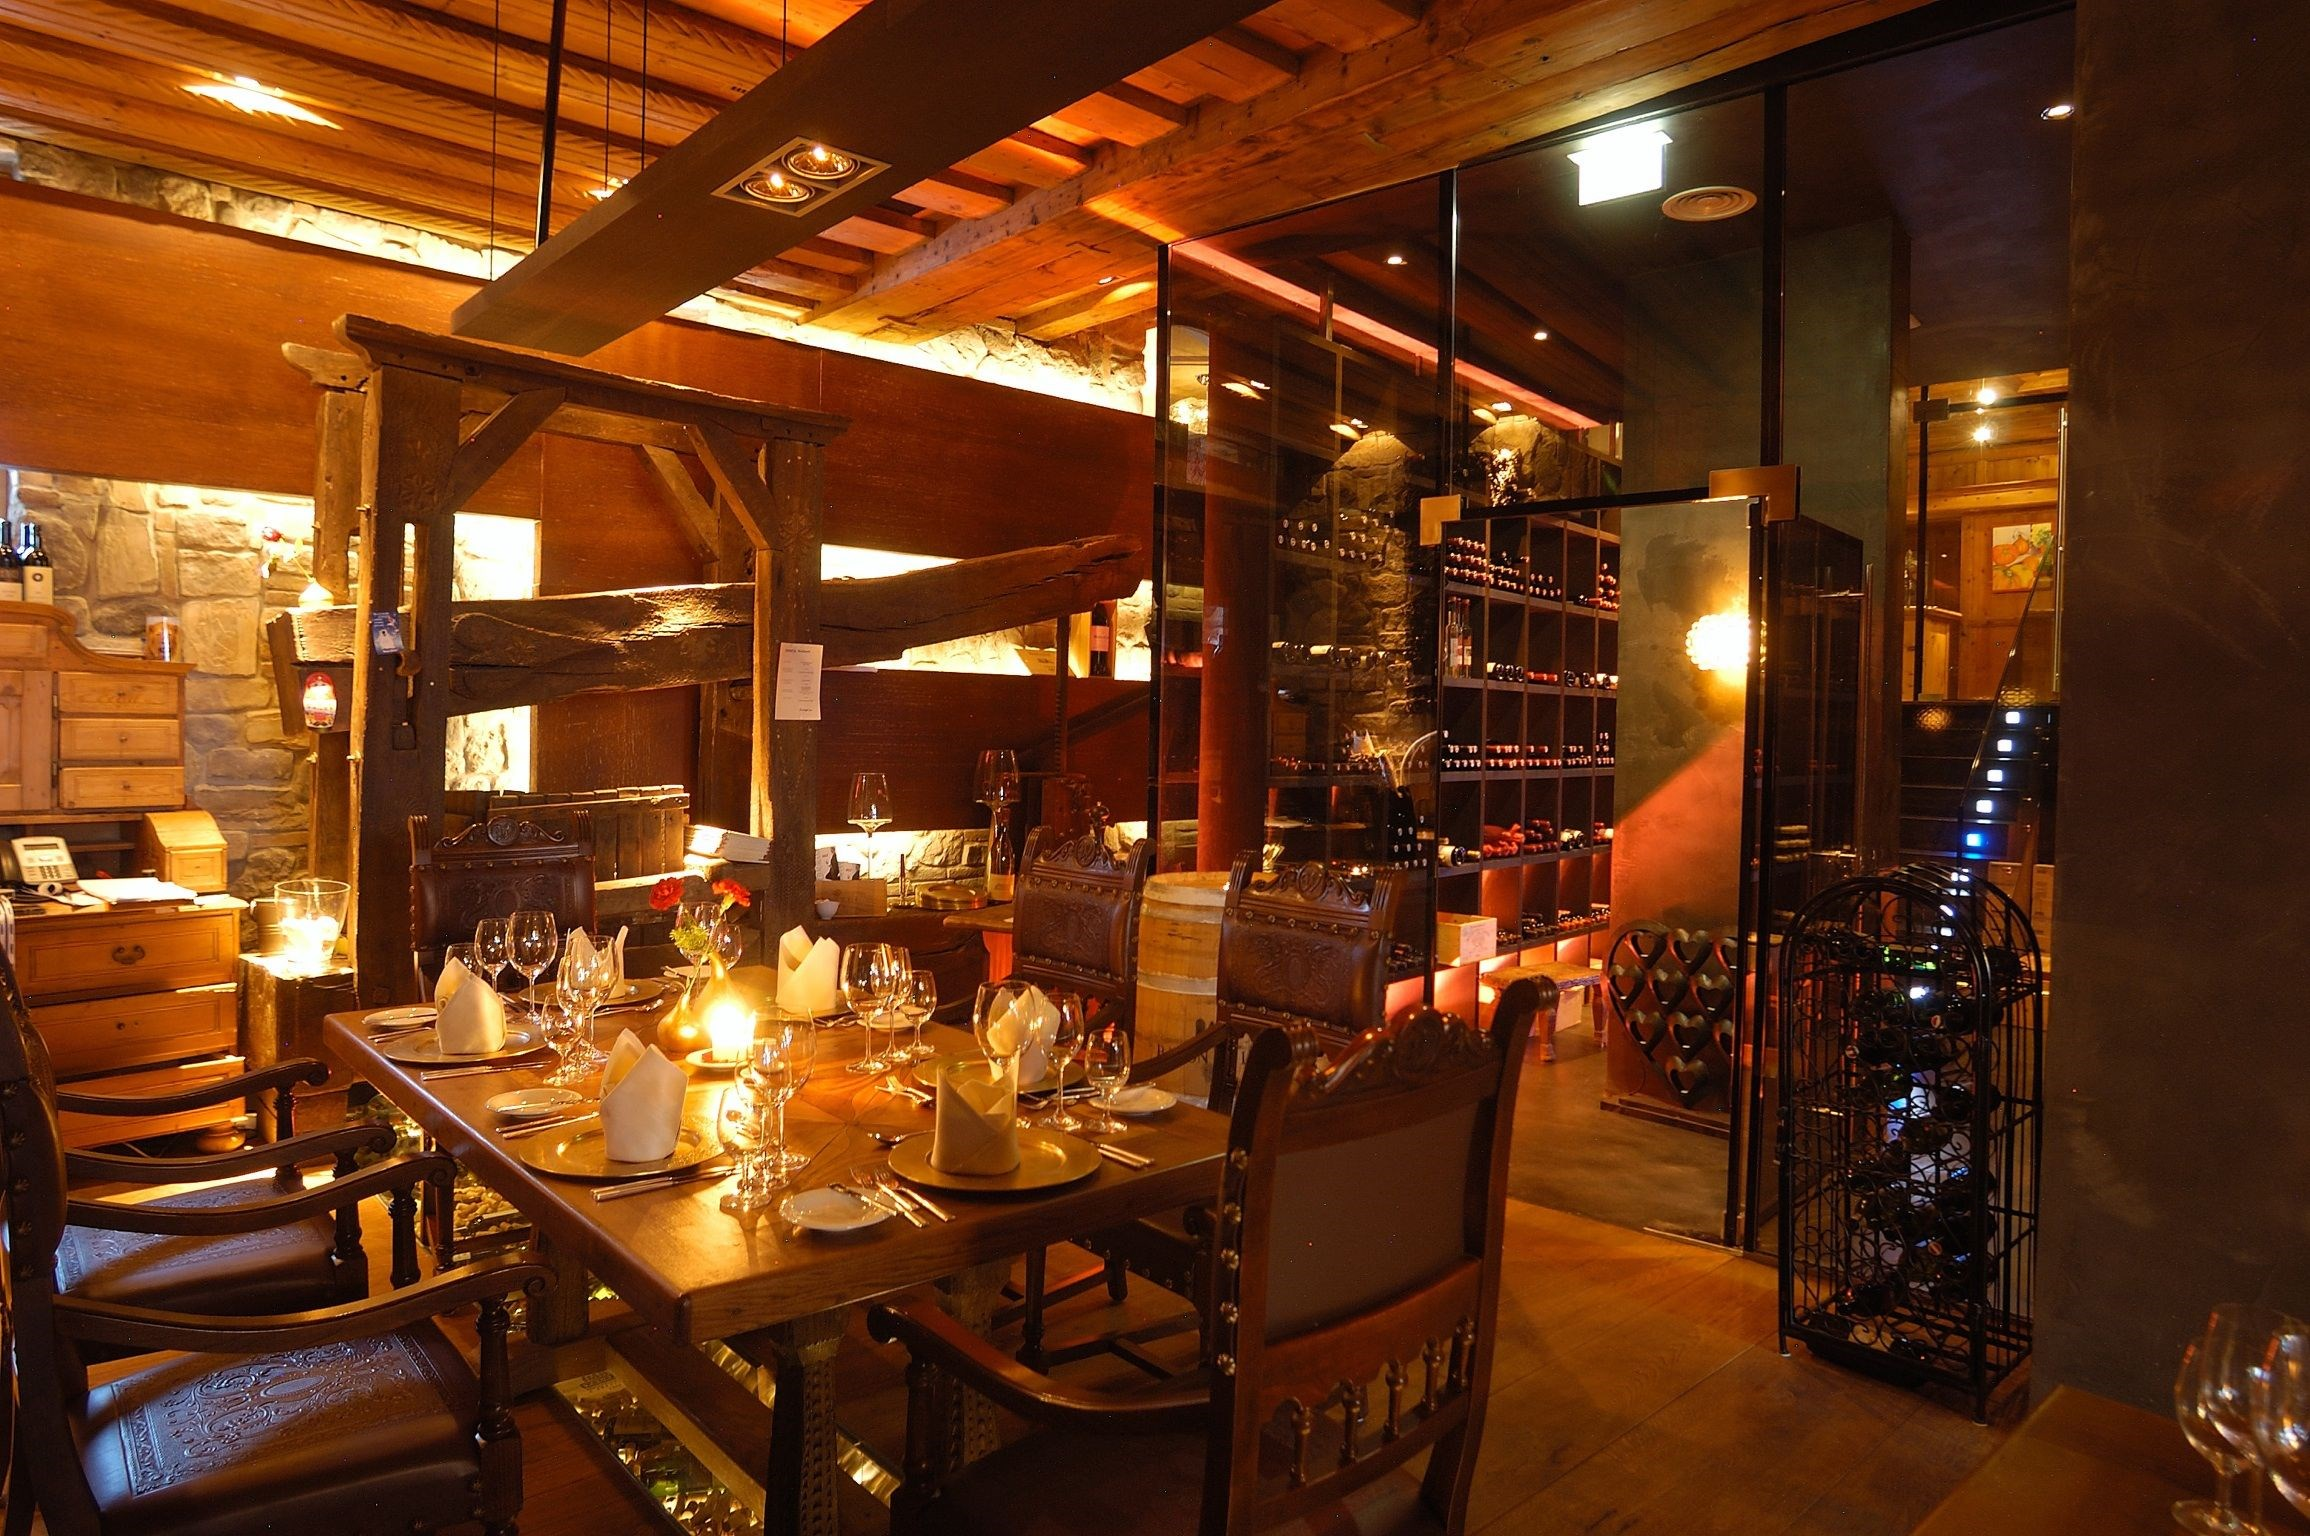 Hochzeitslocation: Weinkeller & 2 Haben Restaurant Arte Vinum - Alpine Palace***** New Balance Luxus Resort